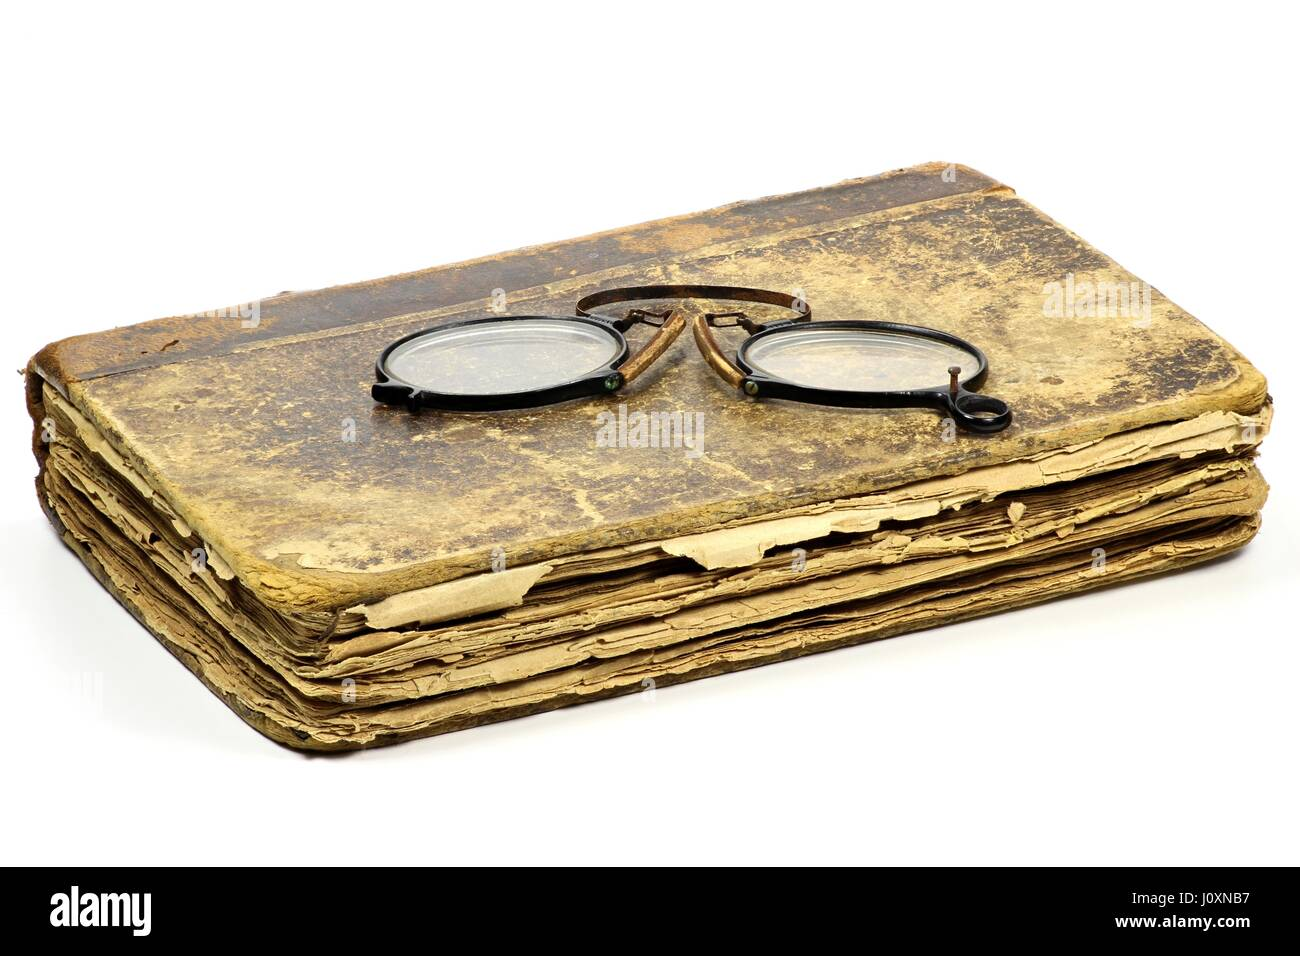 antique book with pince-nez isolated on white background Stock Photo